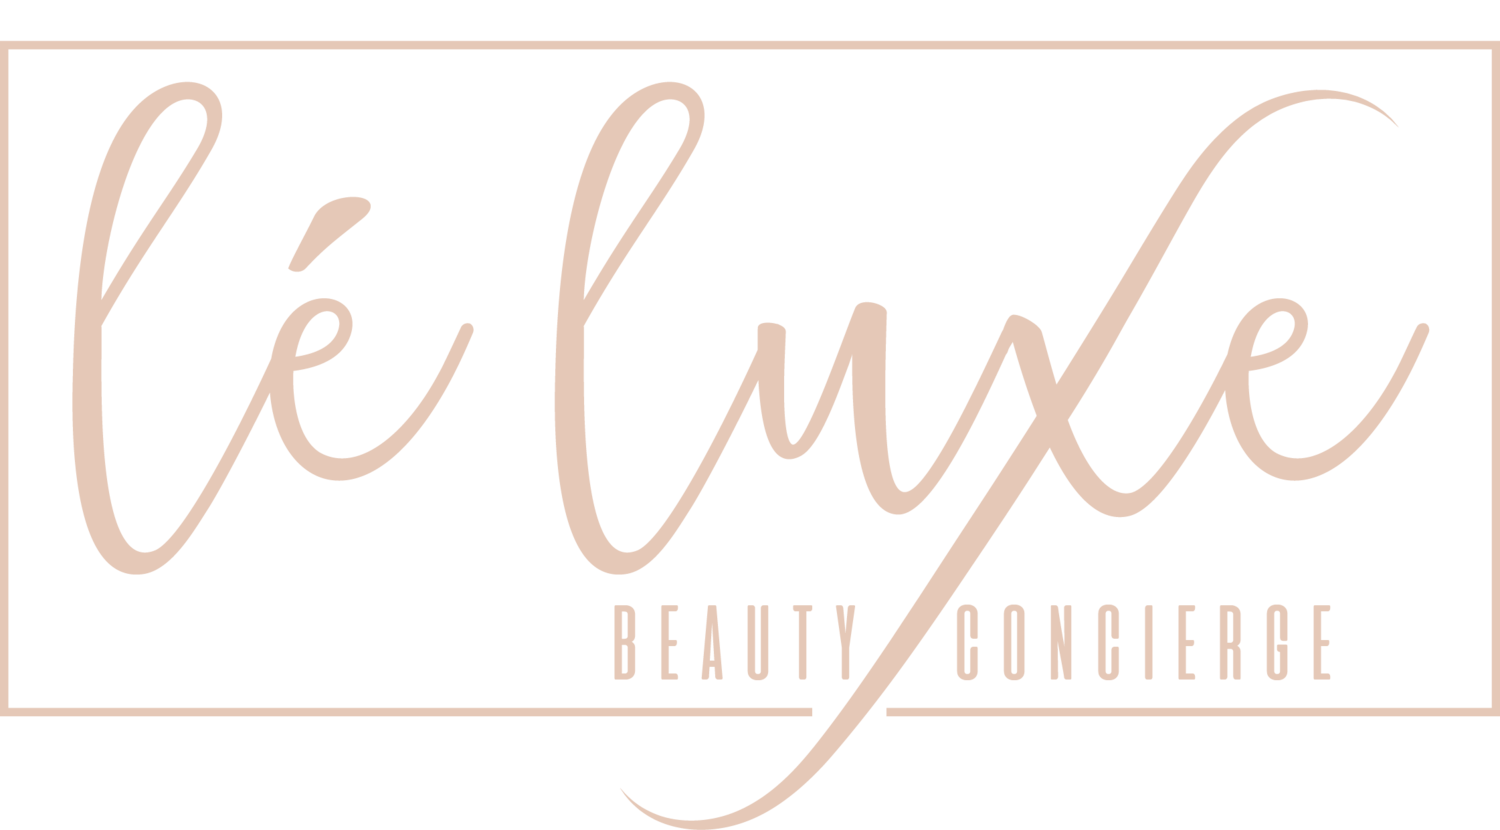 lè luxe beauty concierge